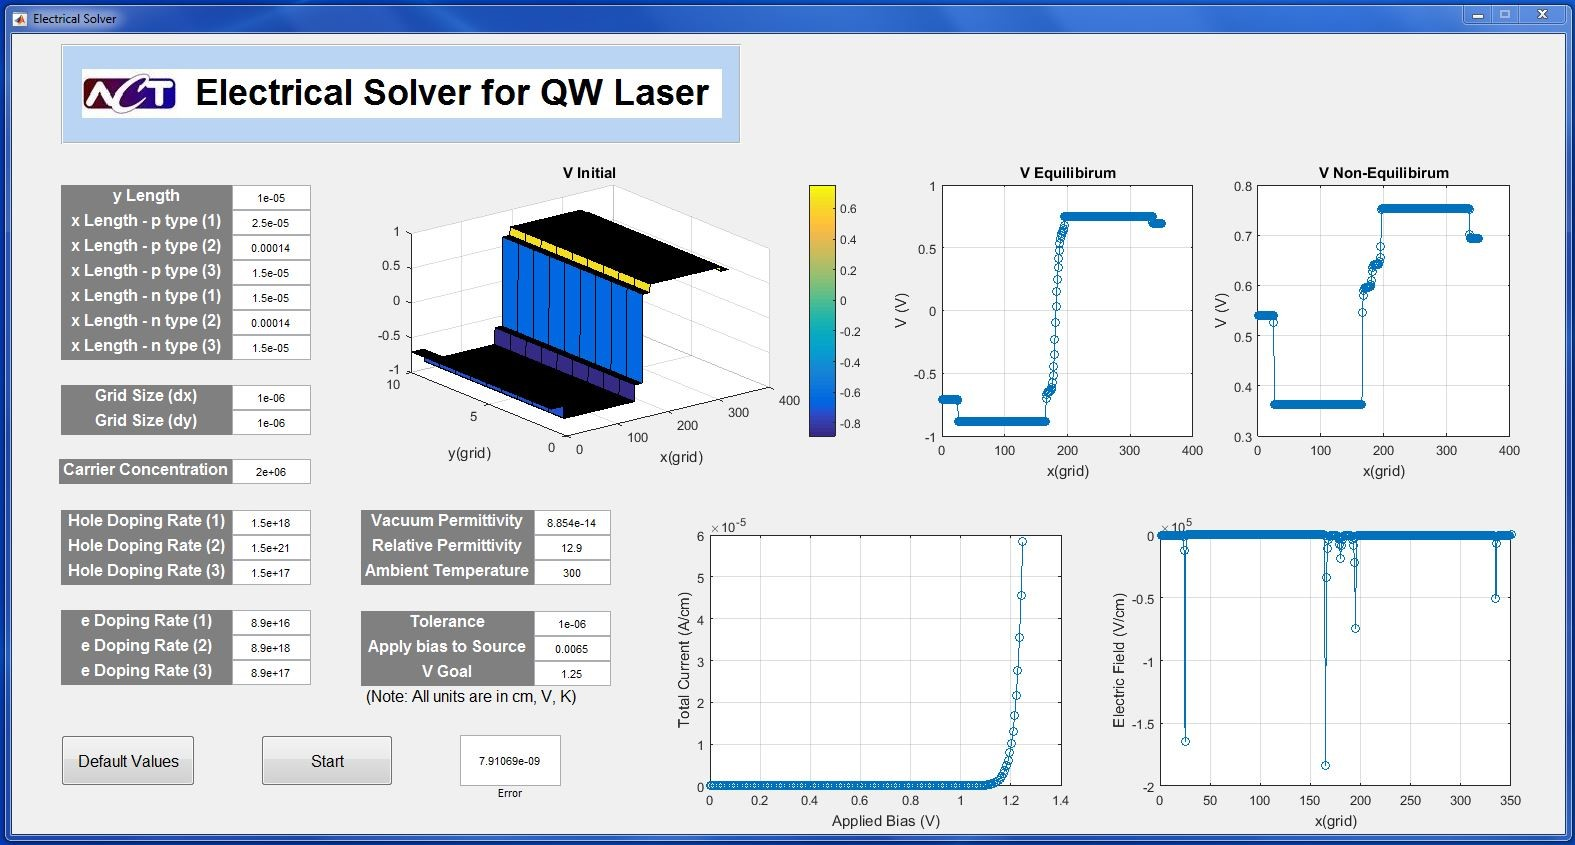 Figure 1. GUI of ACT's electrical solver of a quantum well laser